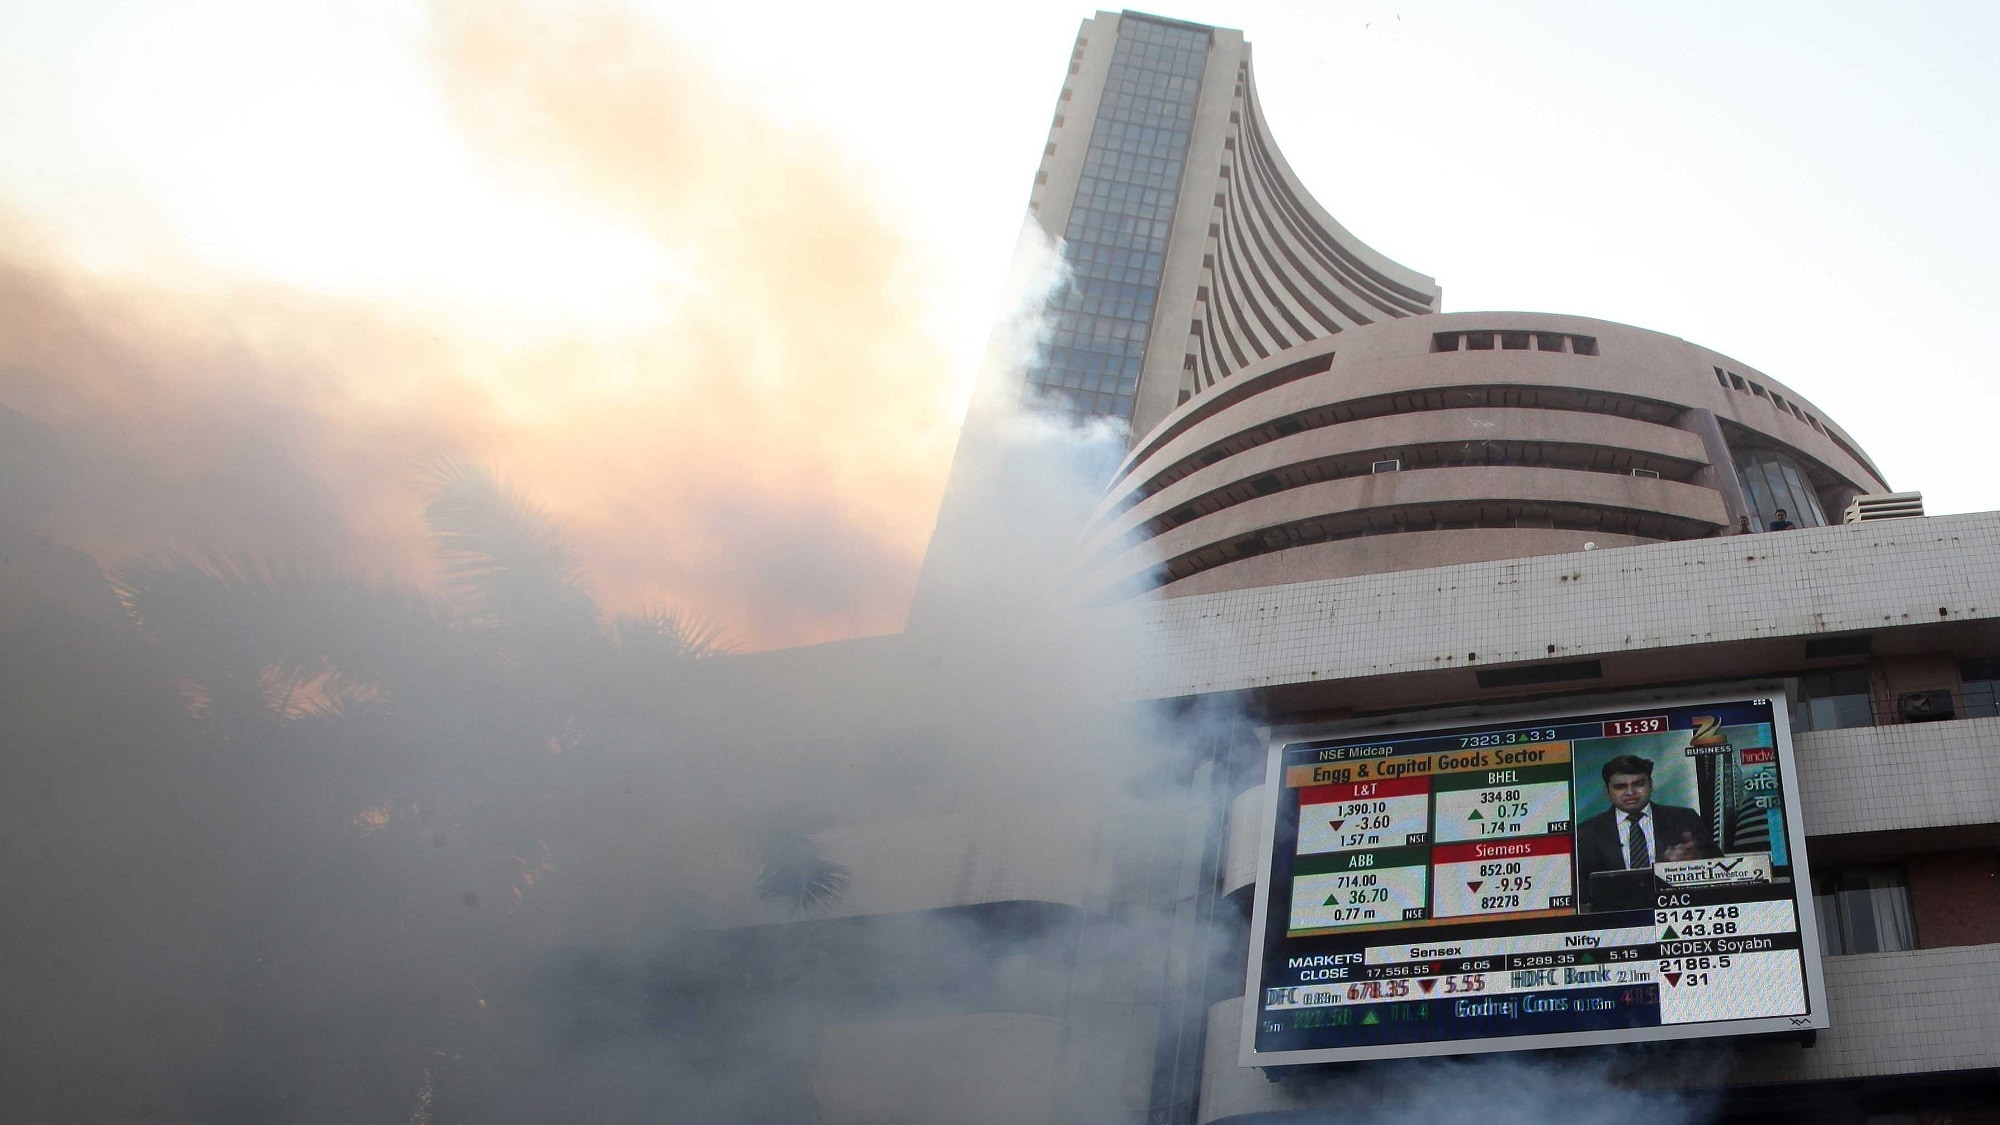 3. Markets At Close On Friday: Indian shares ended higher on Friday, boosted by financials, as investors pumped in money into equities amid hopes that tensions with Pakistan were easing. The Sensex closed 0.54 percent up at 36,063.81 and the Nifty 50 ended 0.67 percent higher at 10,863.50. Inidan markets were closed on Monday on account Mahashivratri (Image: Getty Images)